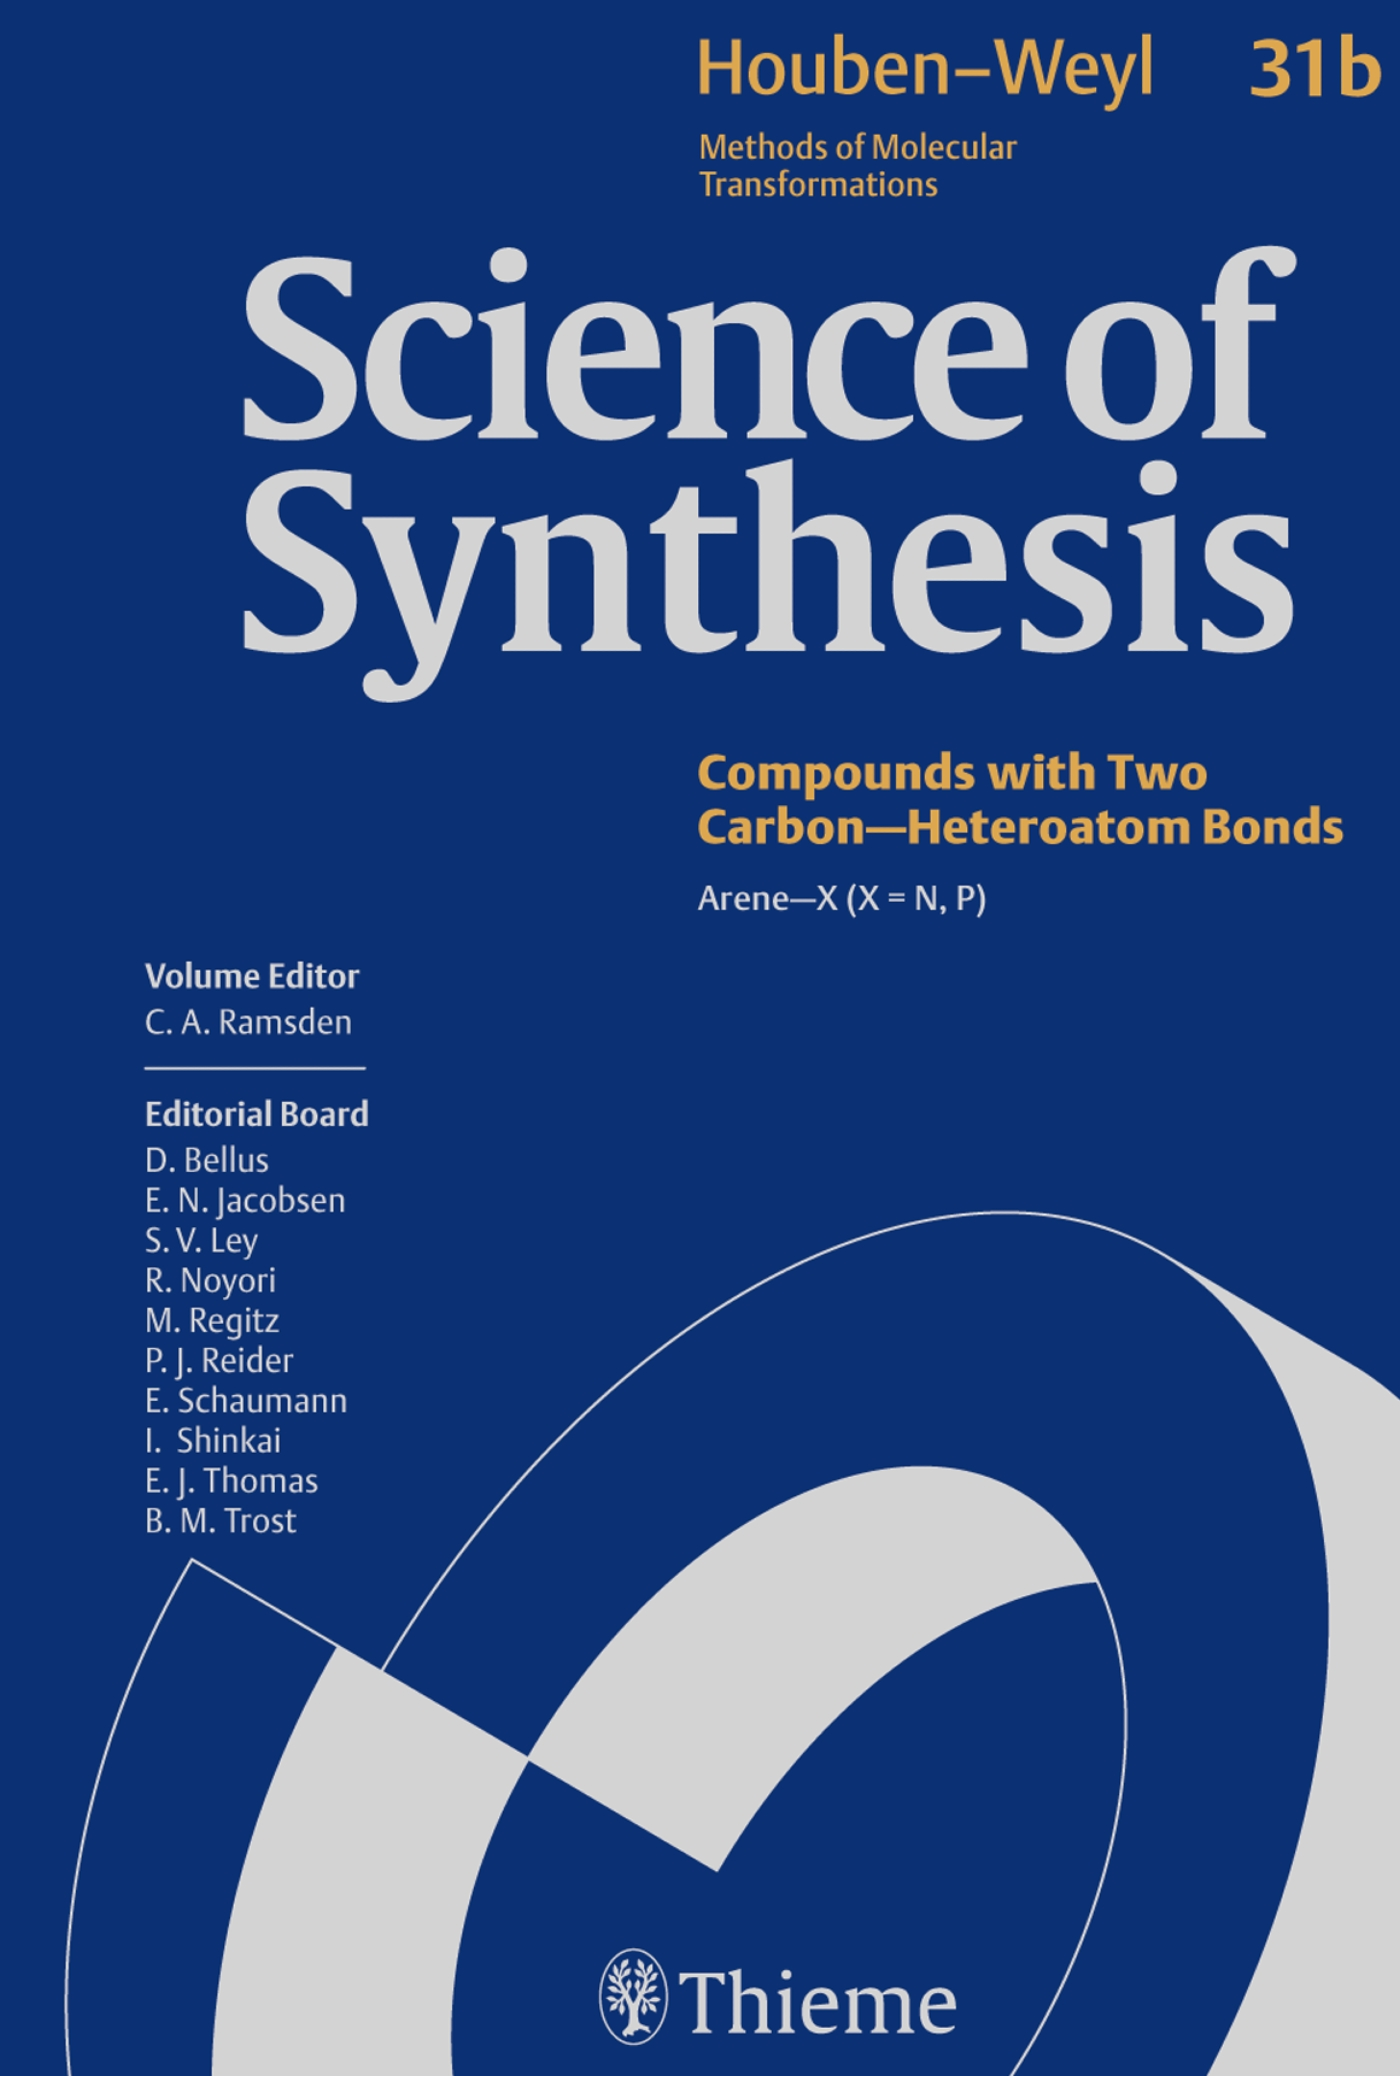 Science of Synthesis: Houben-Weyl Methods of Molecular Transformations  Vol. 31b